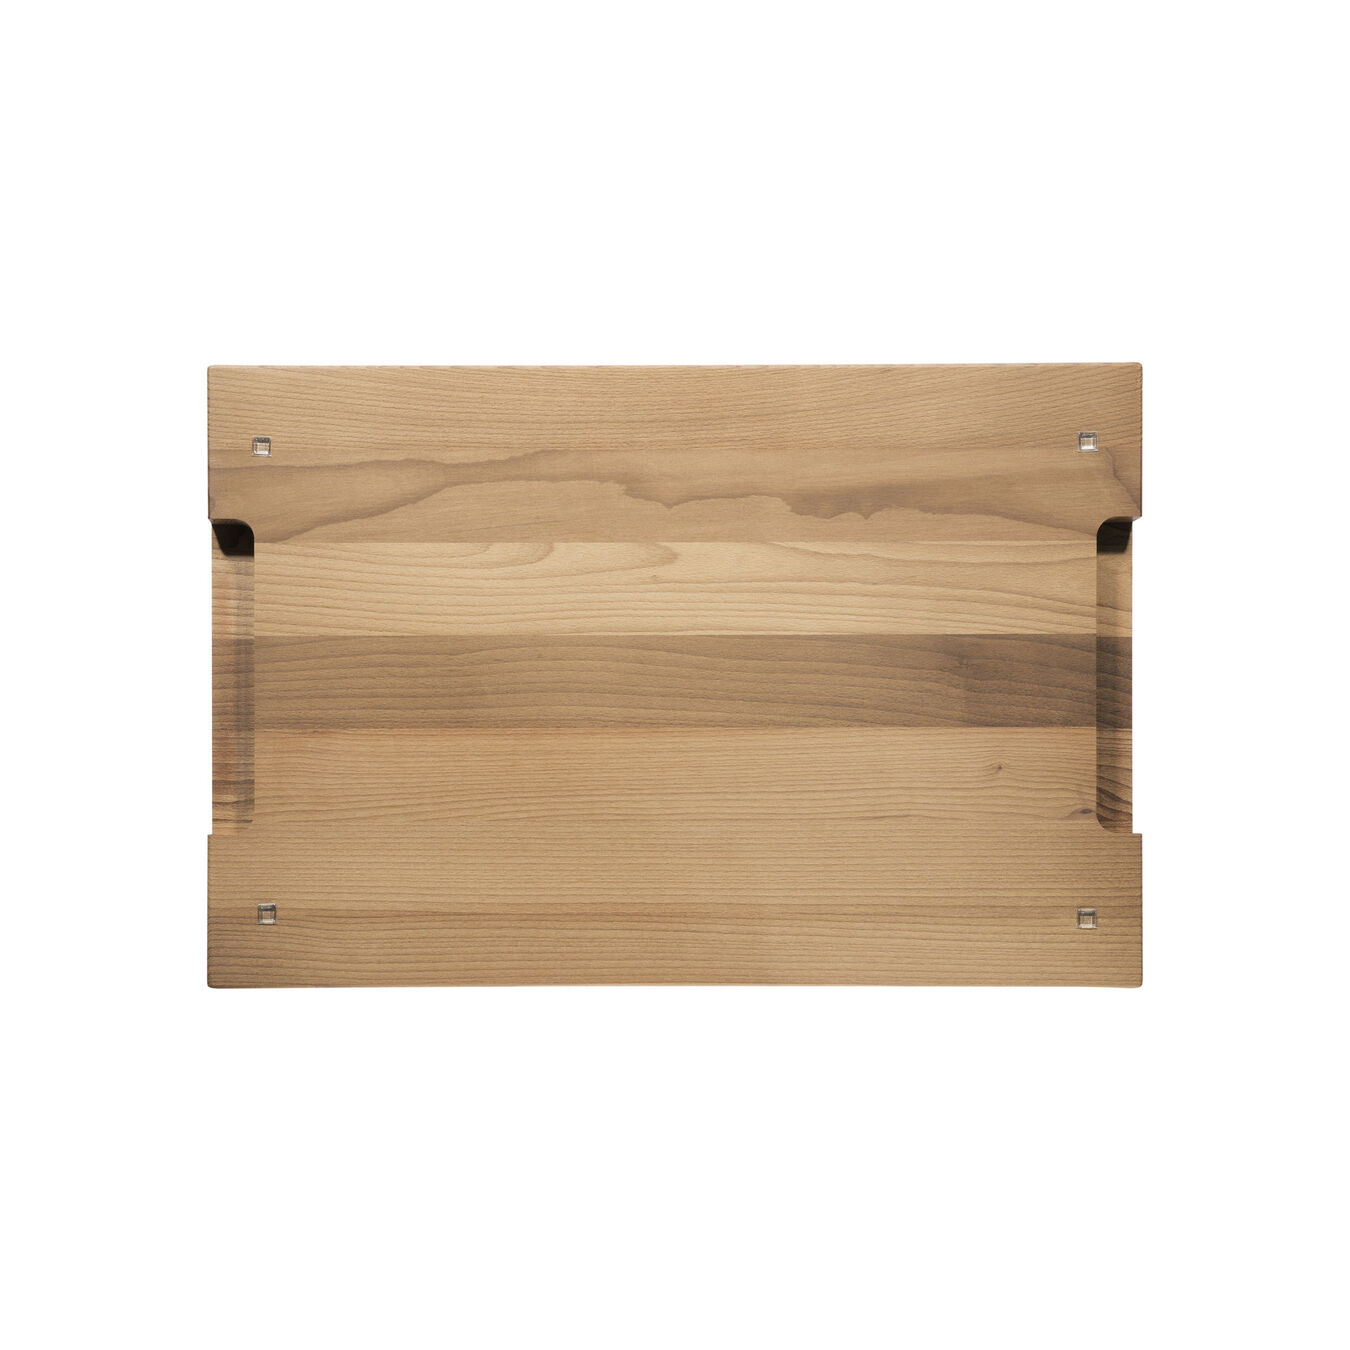 22x16x1.5-inch Natural Beechwood Cutting Board,,large 3